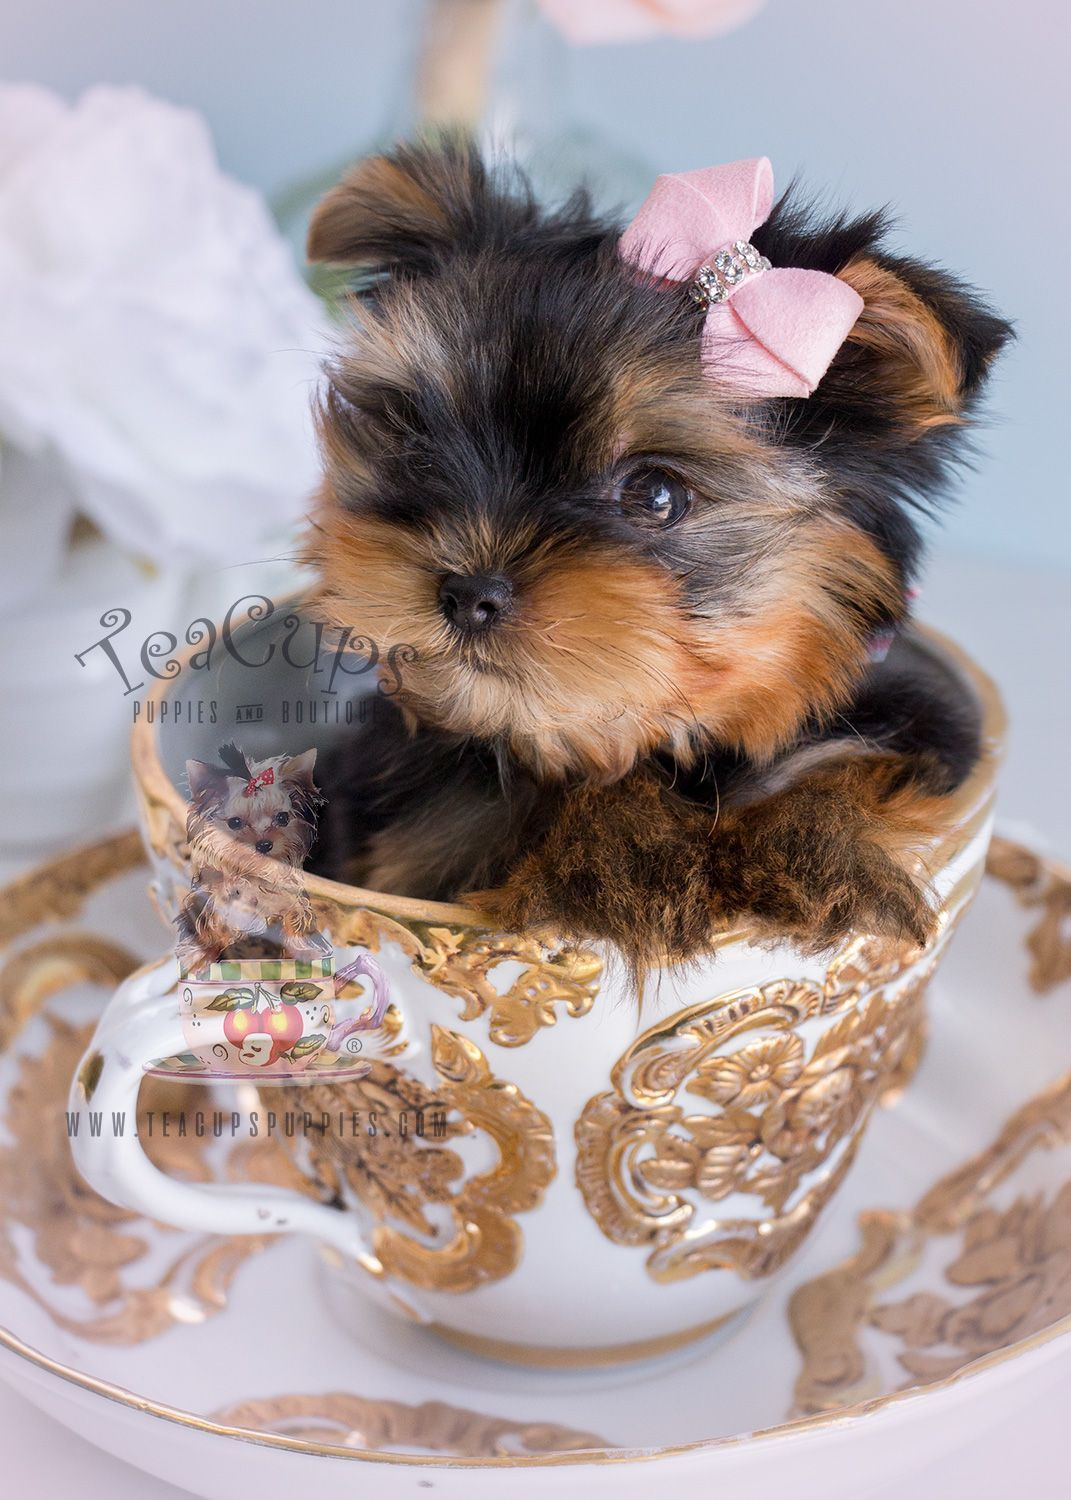 Baby Doll Yorkie Puppy For Sale Florida 128 Cutepuppies Baby